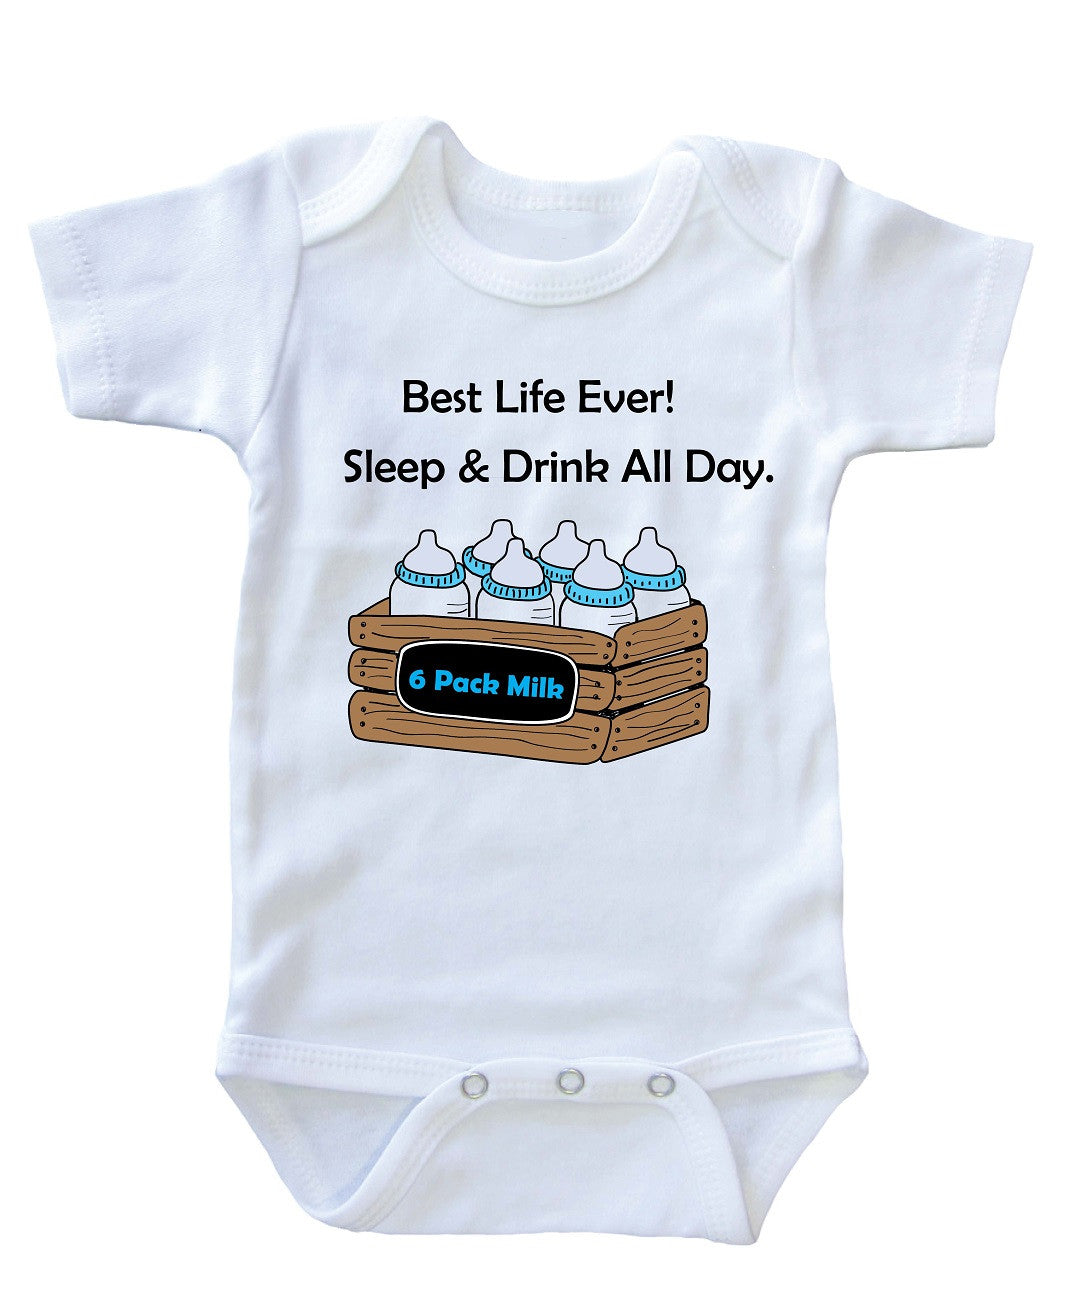 """Best Life Ever"" Baby Onesie"